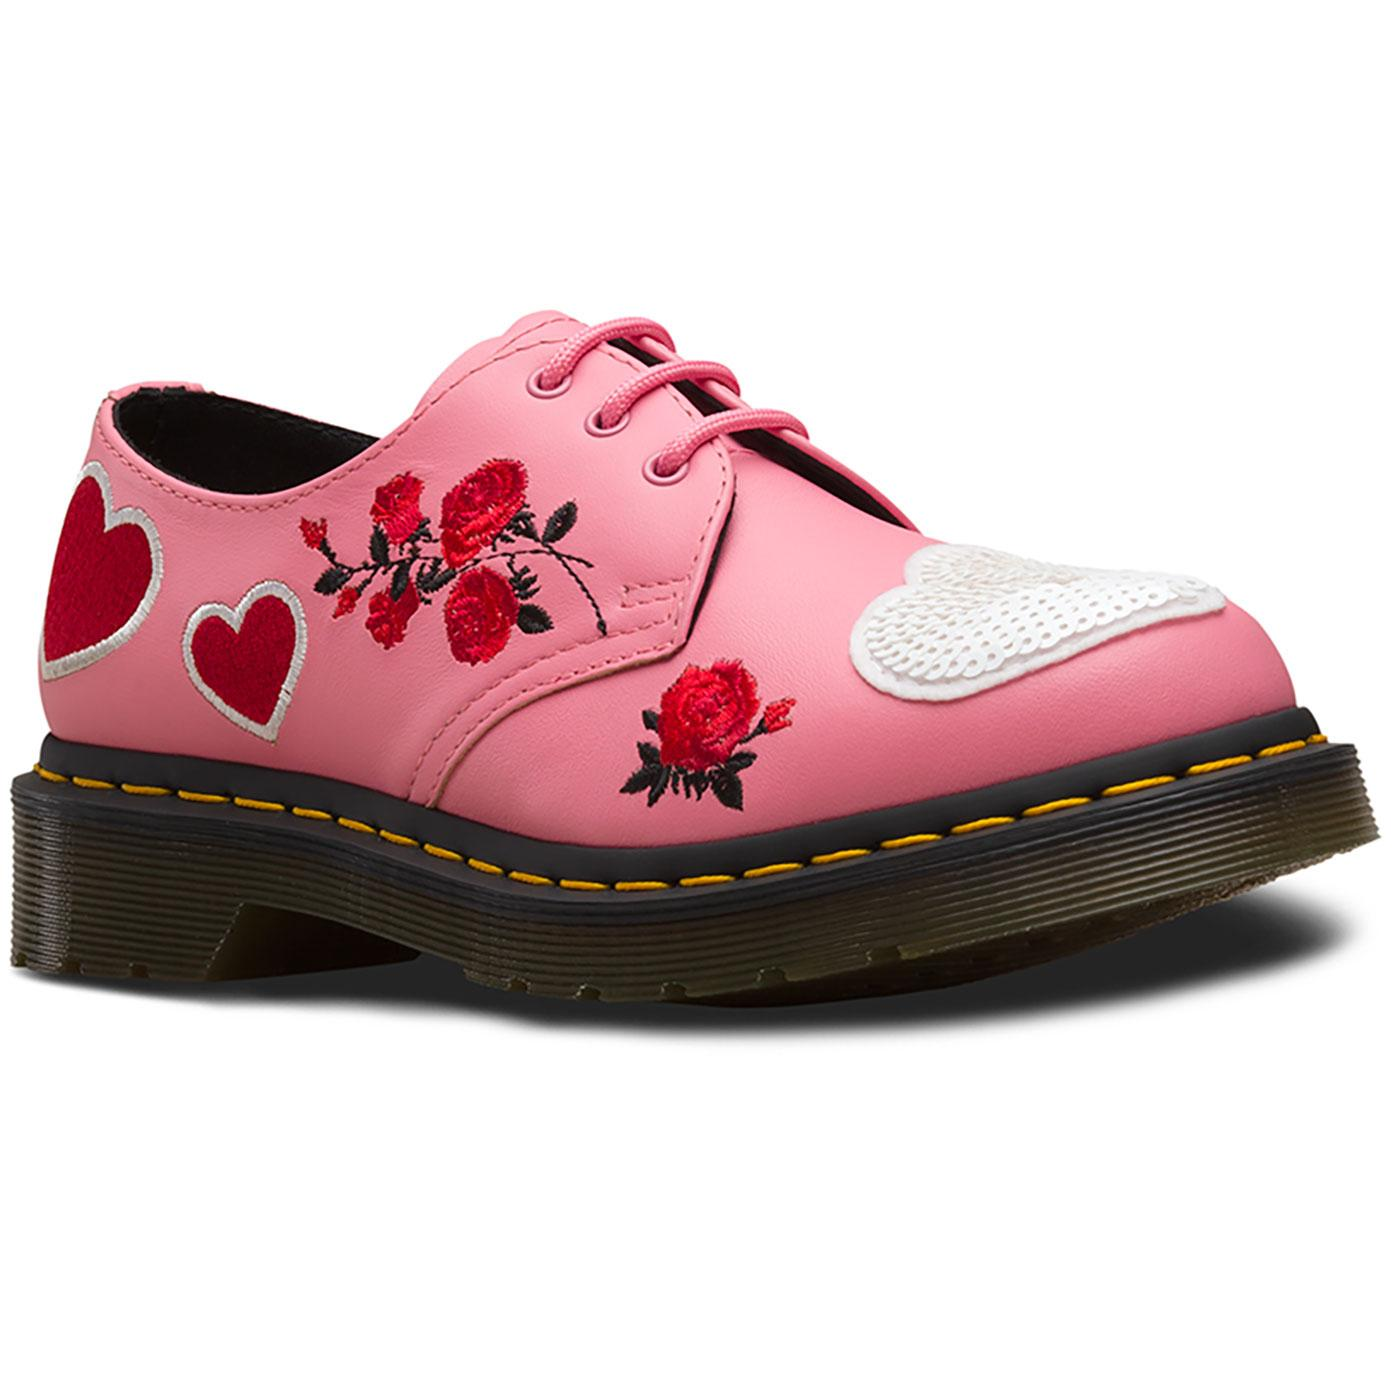 DR MARTENS 1461 Sequin Hearts Retro